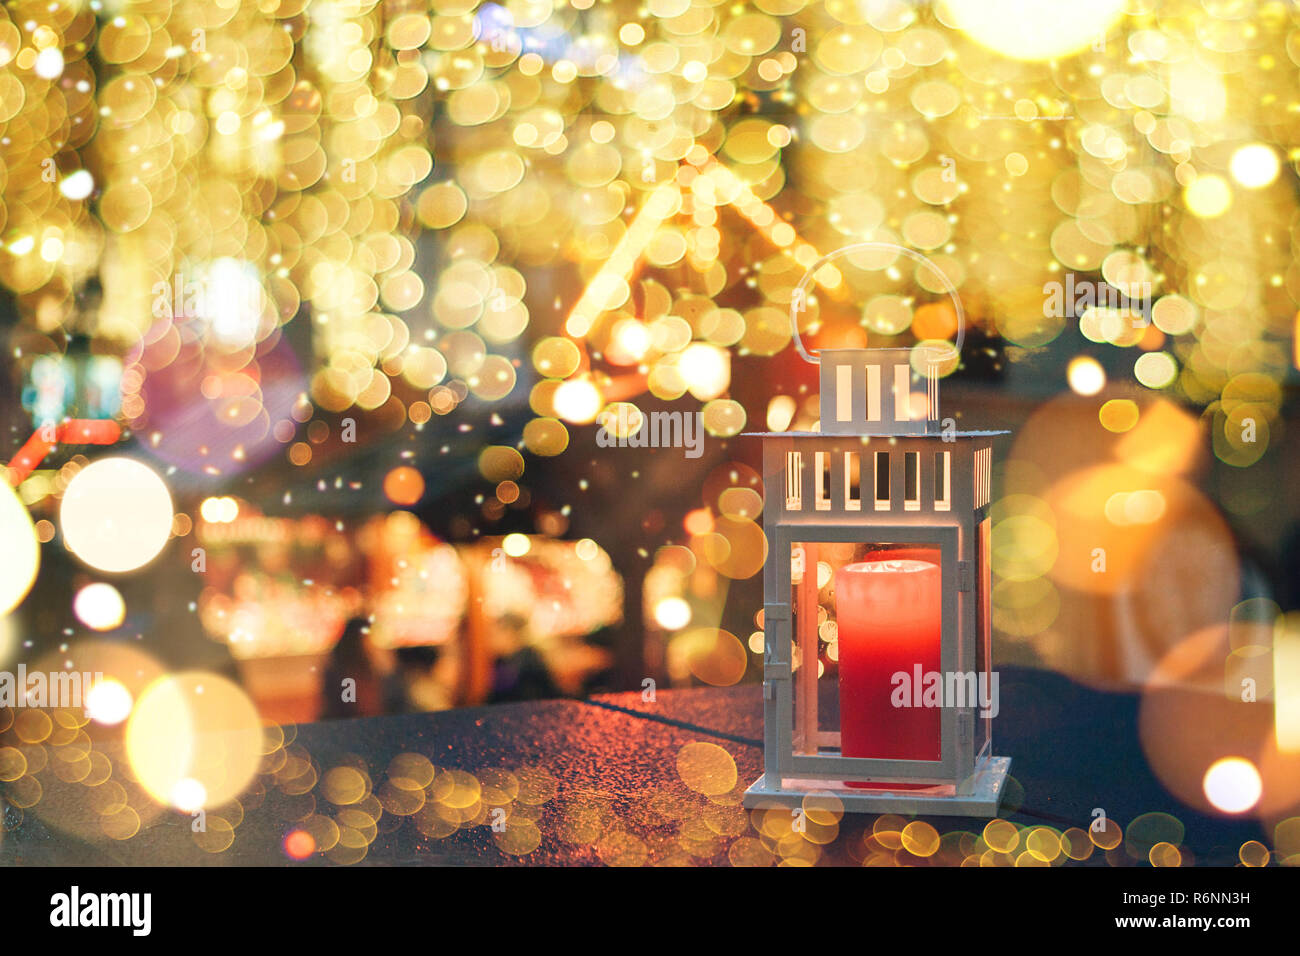 A lamp with a candle at night is decorated with Christmas lights in the background. Festive background. - Stock Image